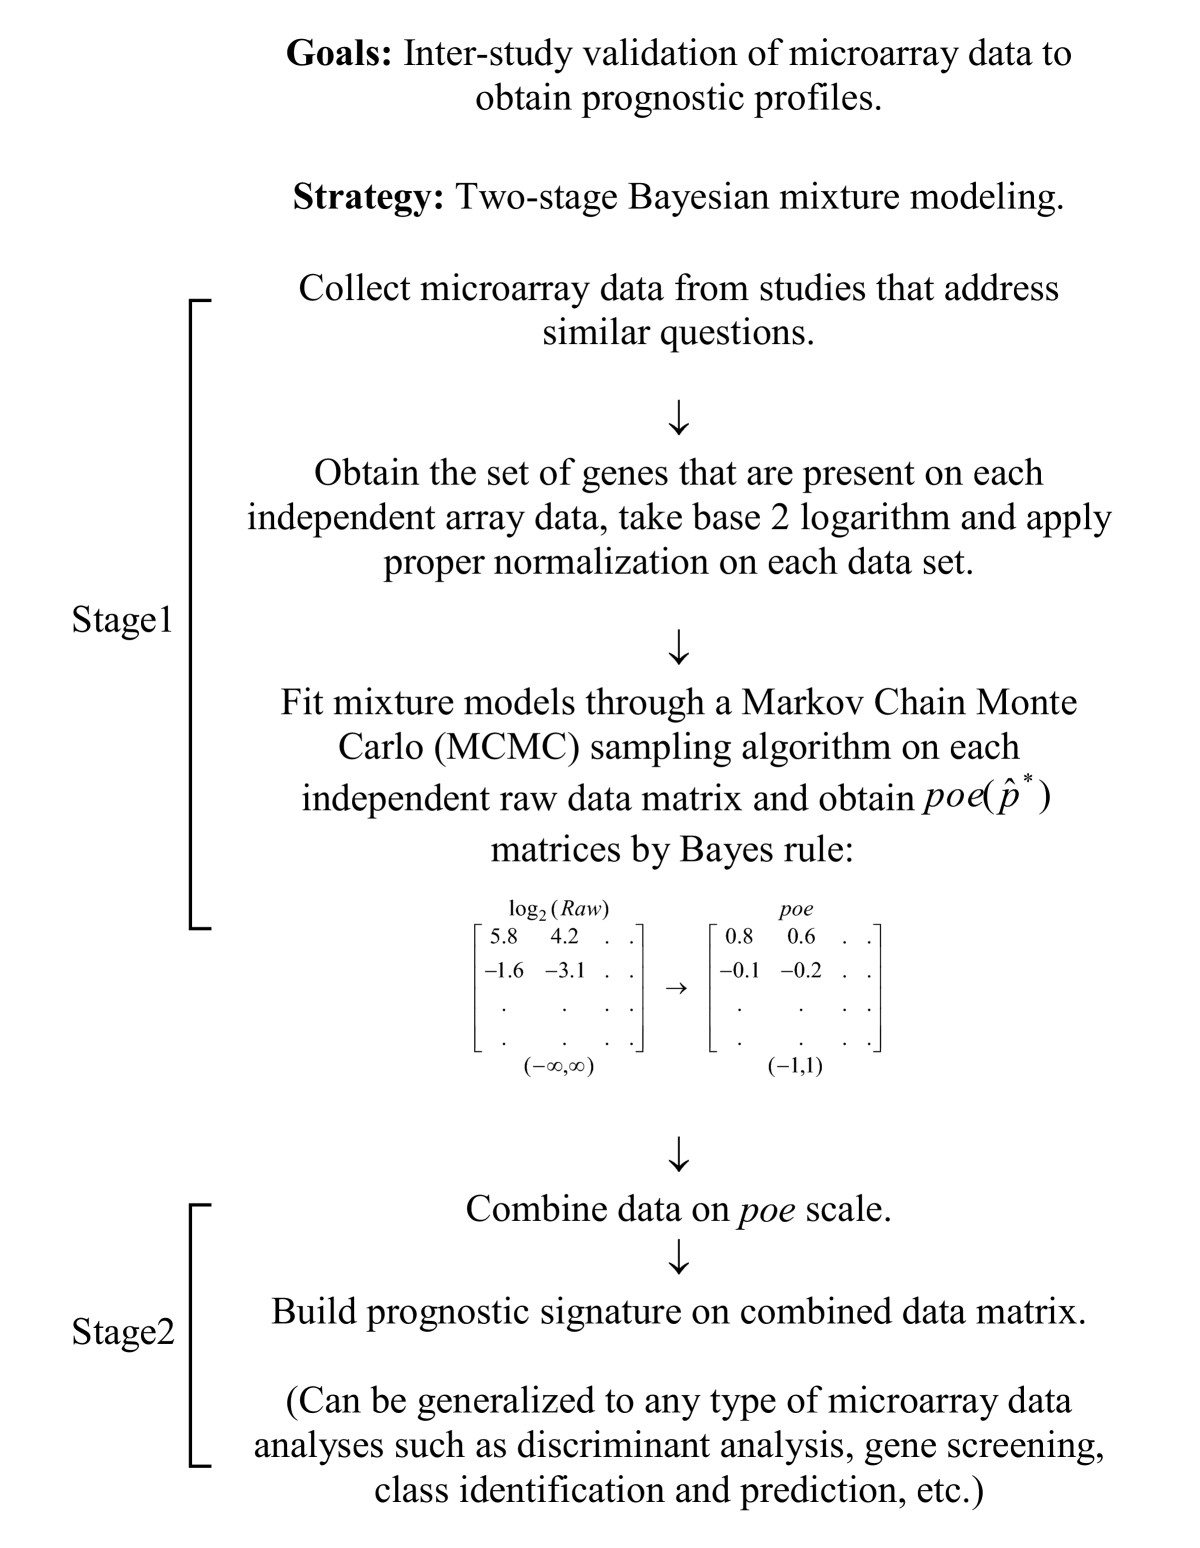 https://static-content.springer.com/image/art%3A10.1186%2F1471-2164-5-94/MediaObjects/12864_2004_Article_196_Fig1_HTML.jpg